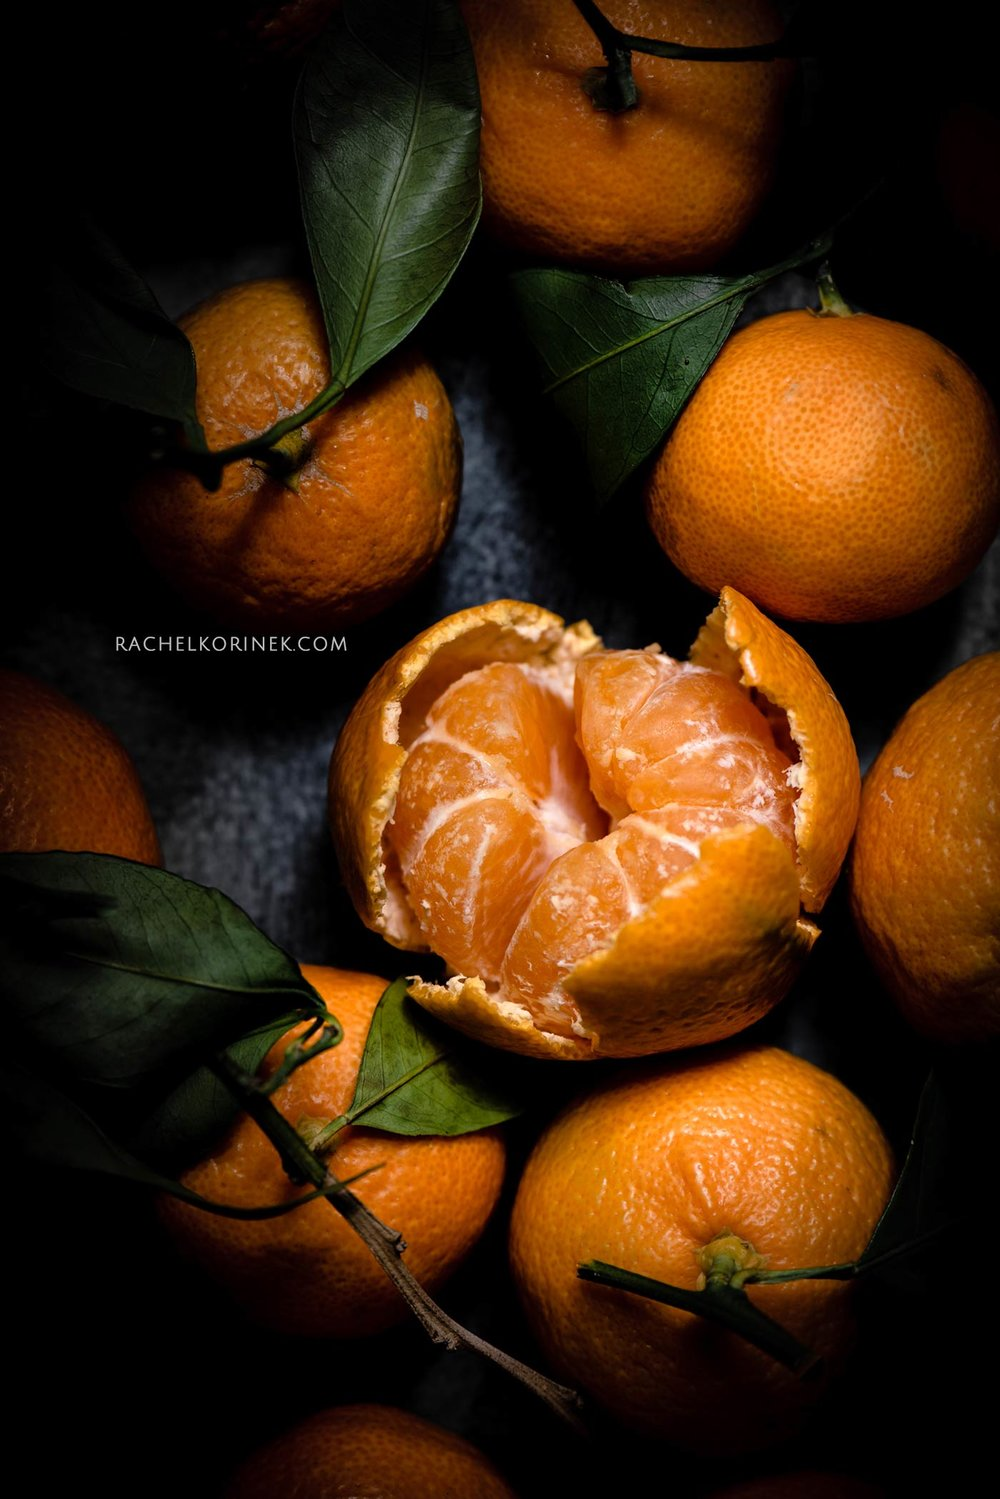 Rachel Korinek | Food Photographer Satsuma Still Life  Click to check out my latest food photography projects.  #twolovesstudio #beautifulcuisine #foodbloggerpro #foodphotography #learnfoodphotography #foodblogger #learnphotography #foodstyling #lightingtips #naturallight #foodphotographer